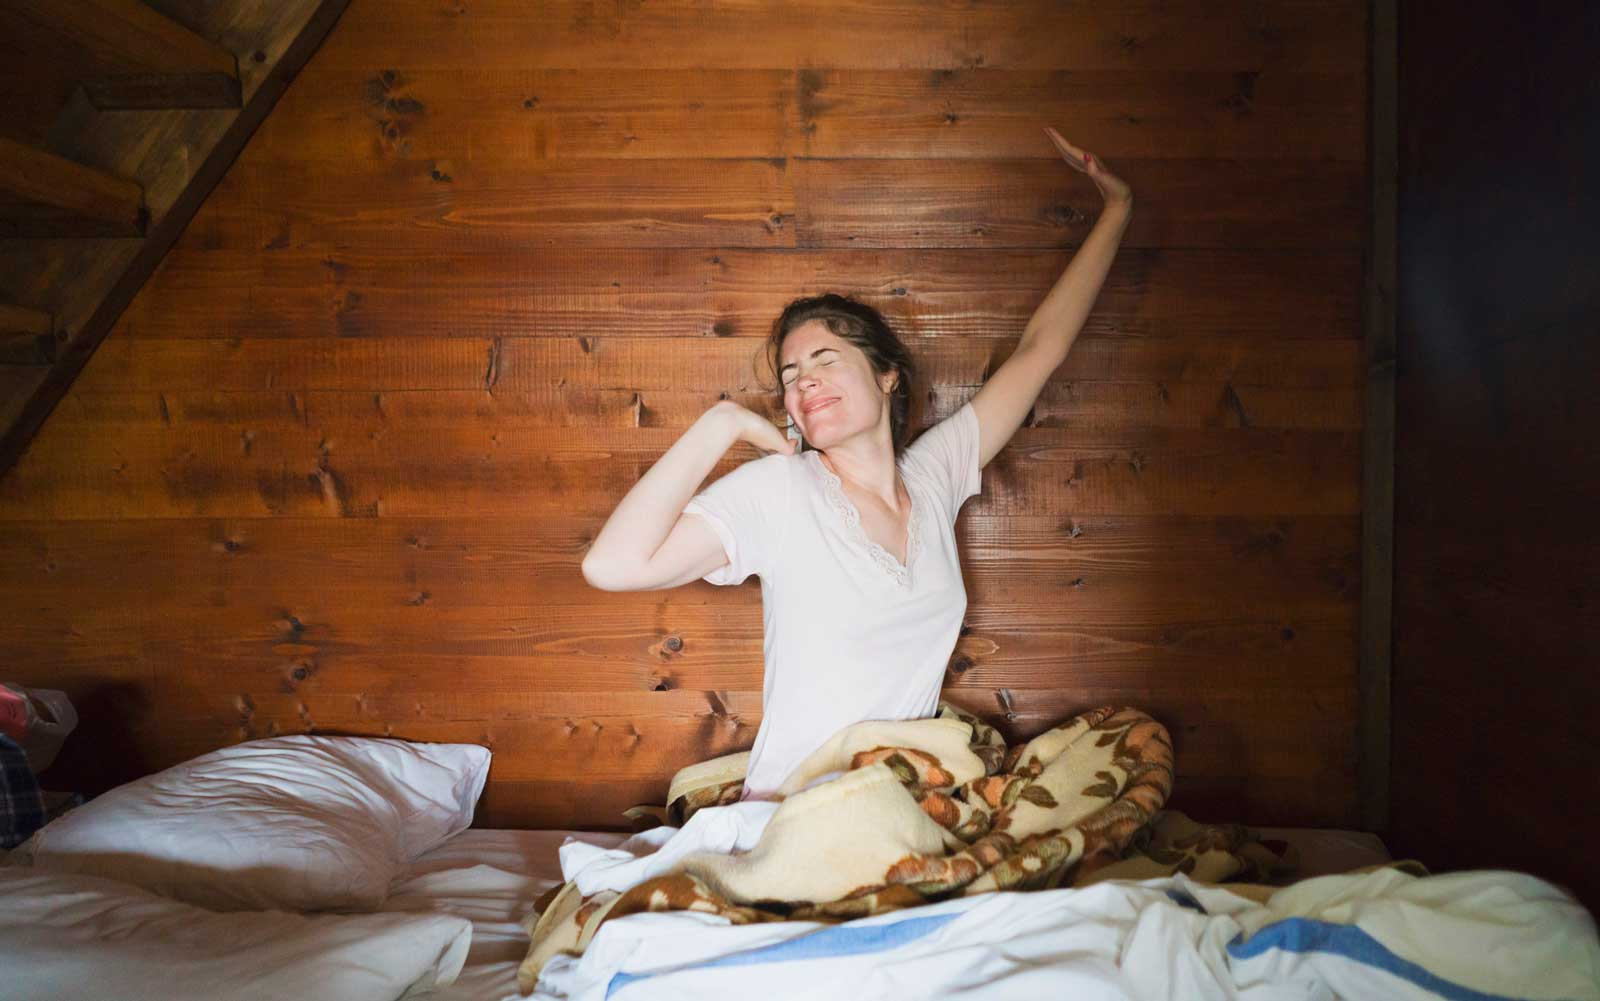 Sleeping in on the Weekend May Not Be Good for Your Health, Study Says